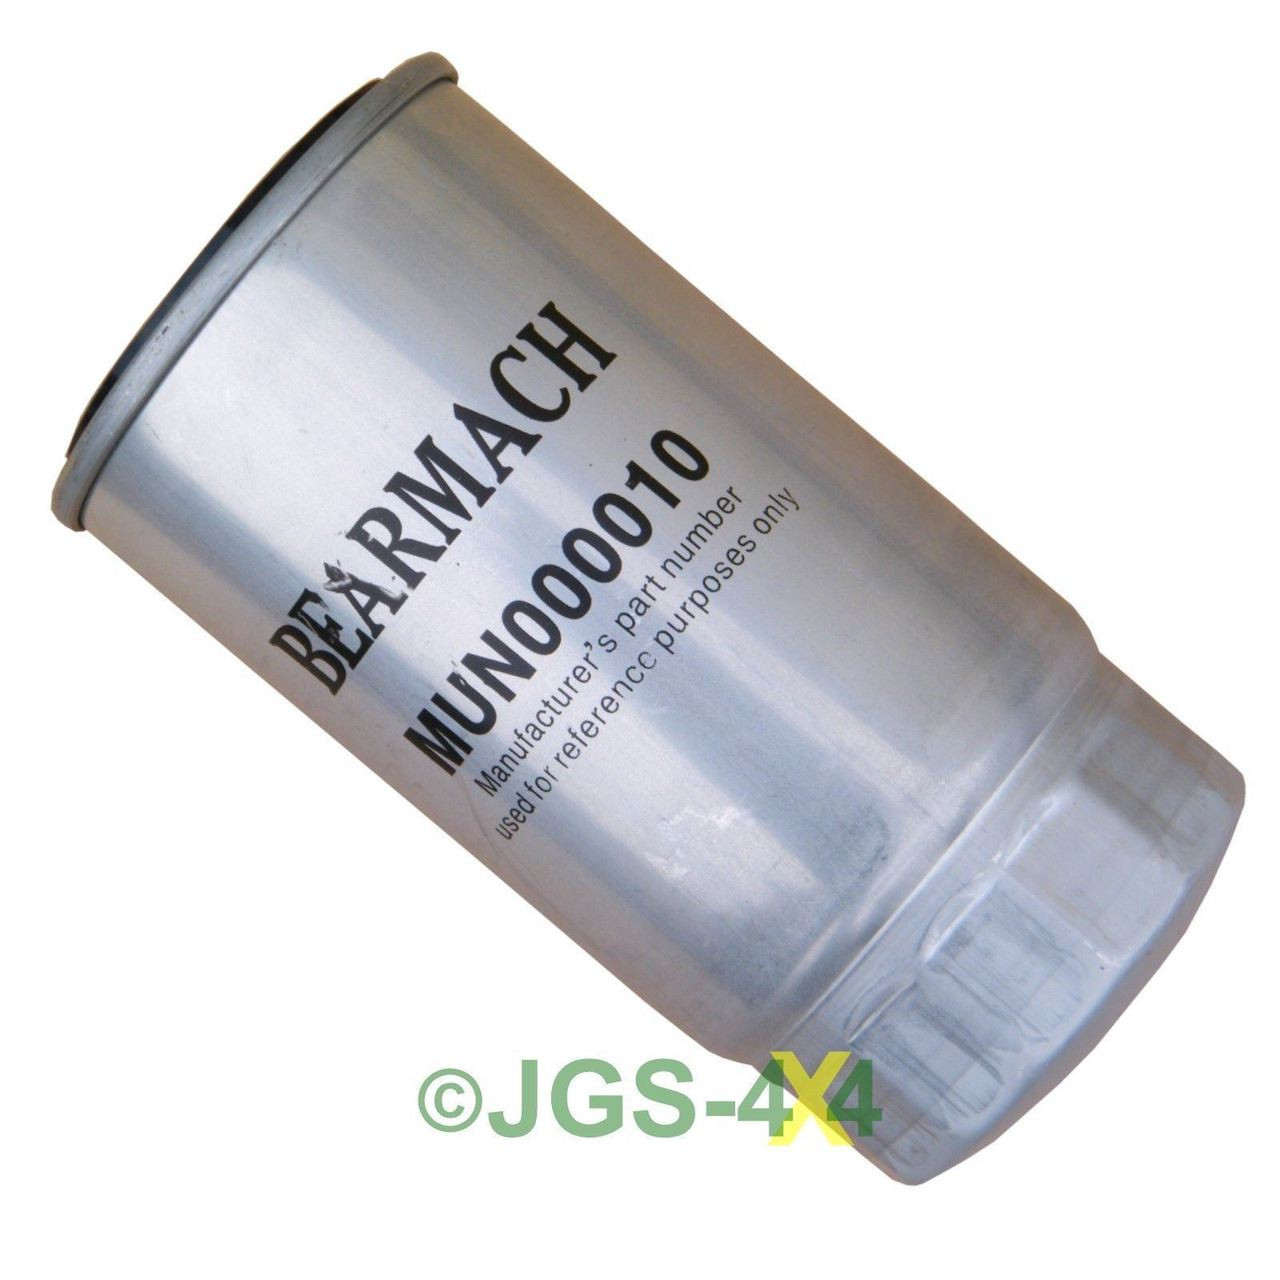 small resolution of jgs4x4 land rover freelander 1 diesel fuel filter 2 0 td4 bmw engine mun000010